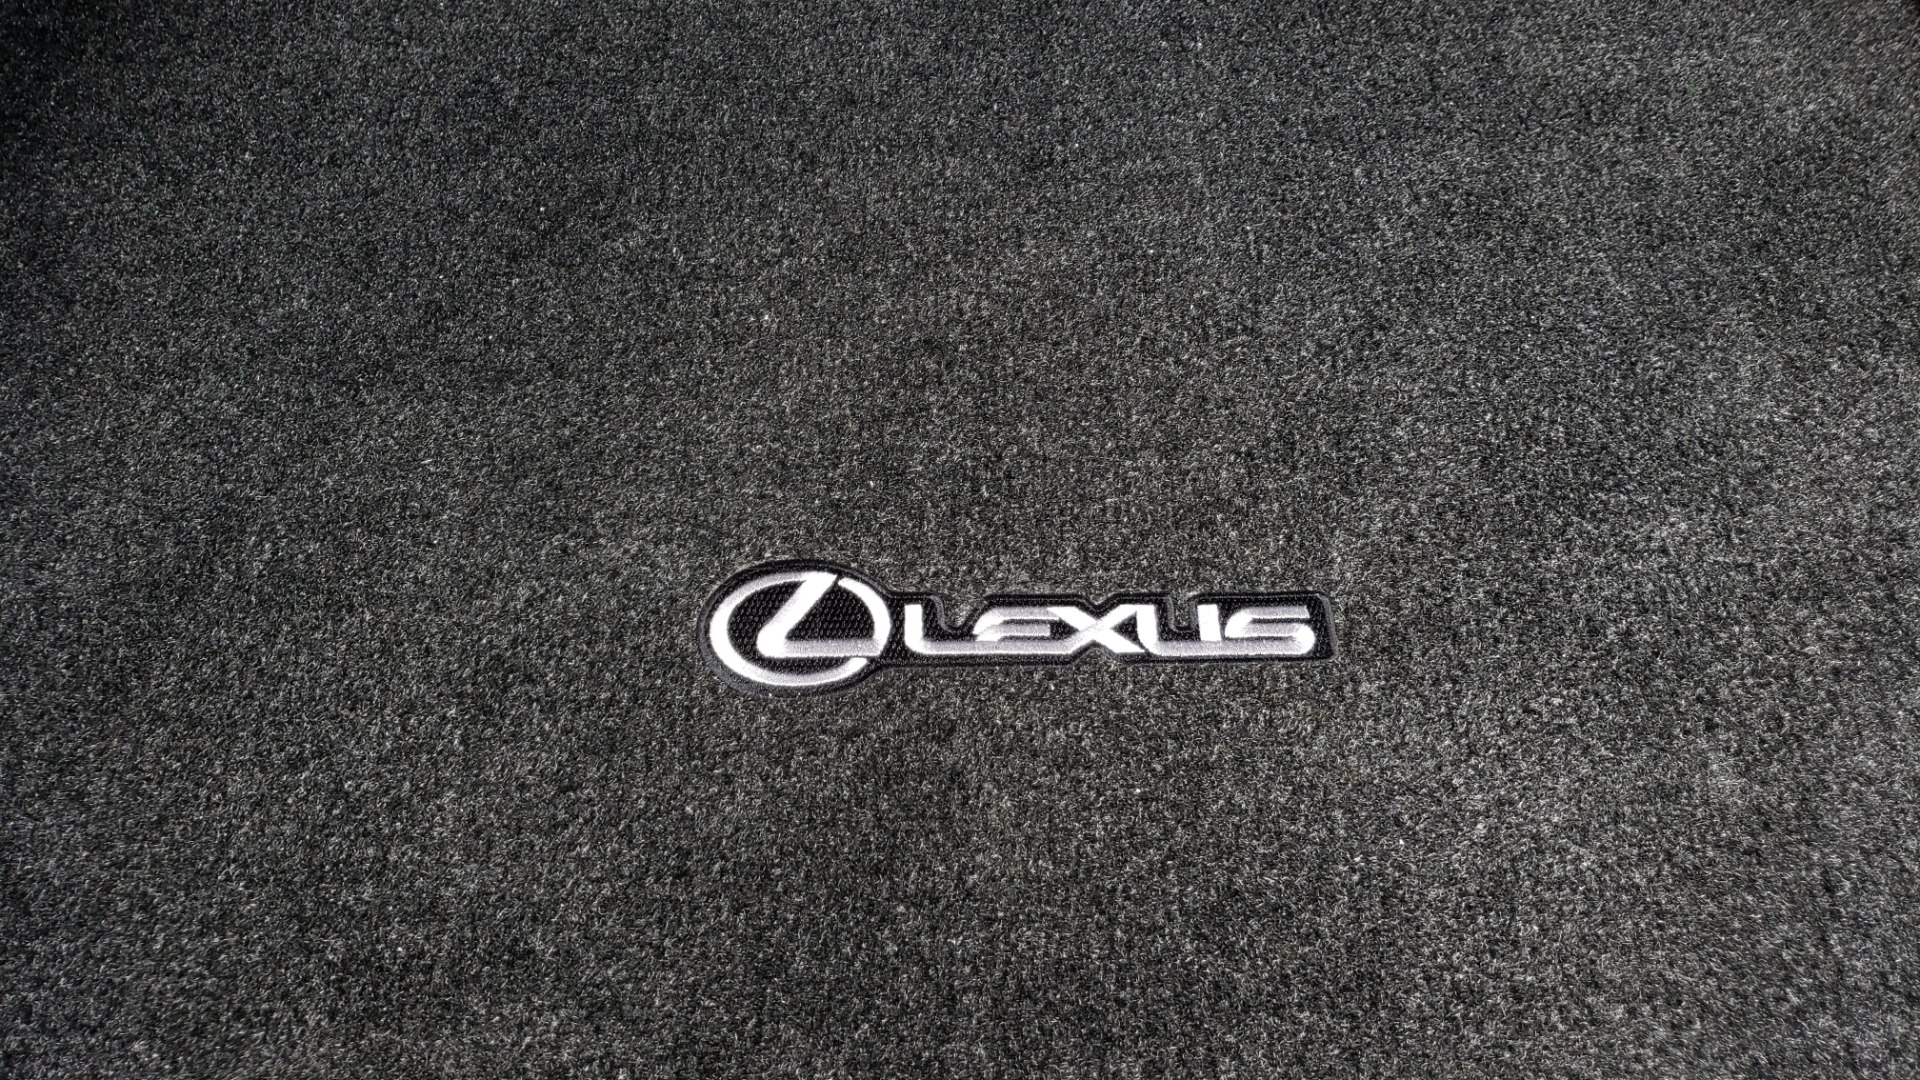 Used 2017 Lexus IS 200 TURBO F-SPORT / BSM / SUNROOF / VENT SEATS / REARVIEW for sale Sold at Formula Imports in Charlotte NC 28227 21